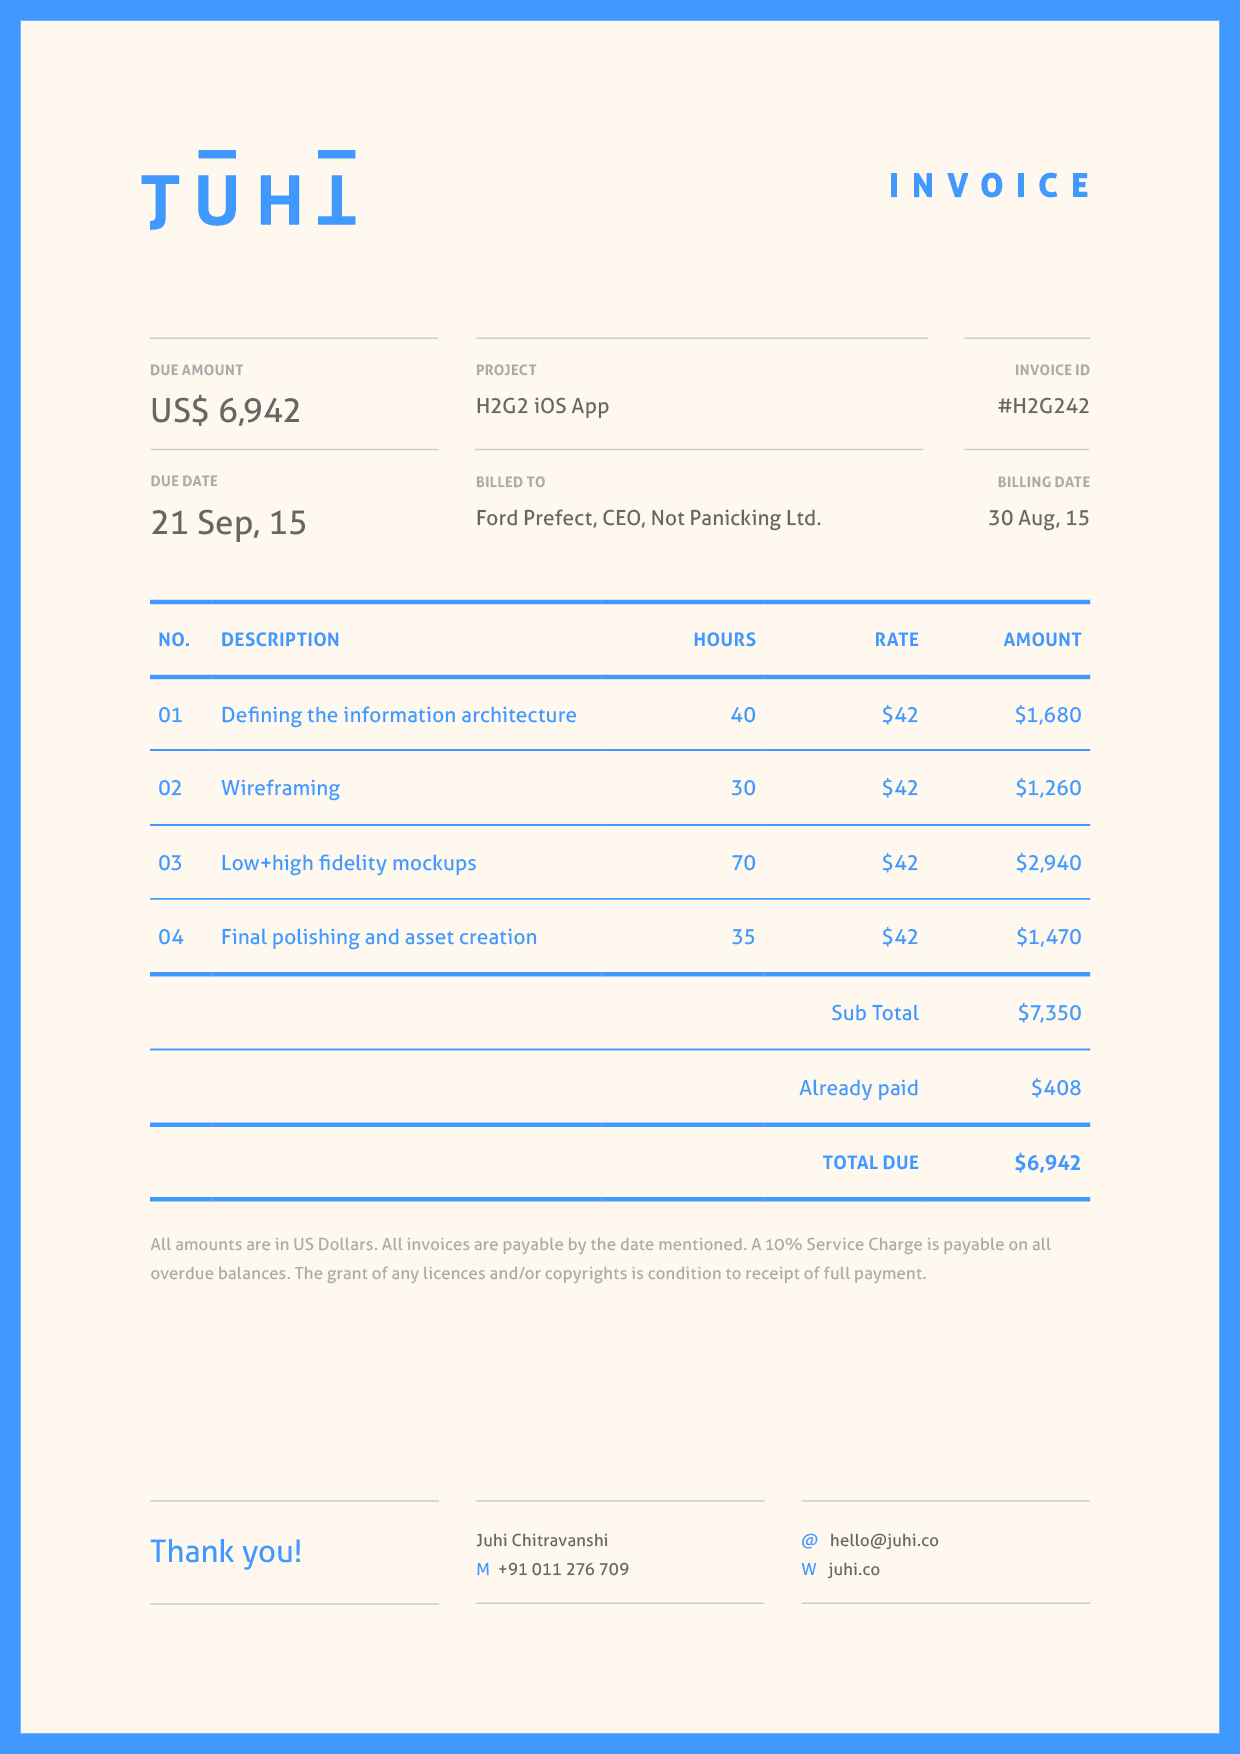 Ebitus  Fascinating Dont Hold Back On Your Invoice  Inspiring Designs  With Lovely Invoice By Juhi Chitravanshi Follow With Cute Invoice Processing System Also Template For Invoice For Services In Addition How To Track Invoices And Invoice And Receipt Template As Well As Written Invoice Additionally Invoice Prices For New Trucks From Inspirationfeedcom With Ebitus  Lovely Dont Hold Back On Your Invoice  Inspiring Designs  With Cute Invoice By Juhi Chitravanshi Follow And Fascinating Invoice Processing System Also Template For Invoice For Services In Addition How To Track Invoices From Inspirationfeedcom